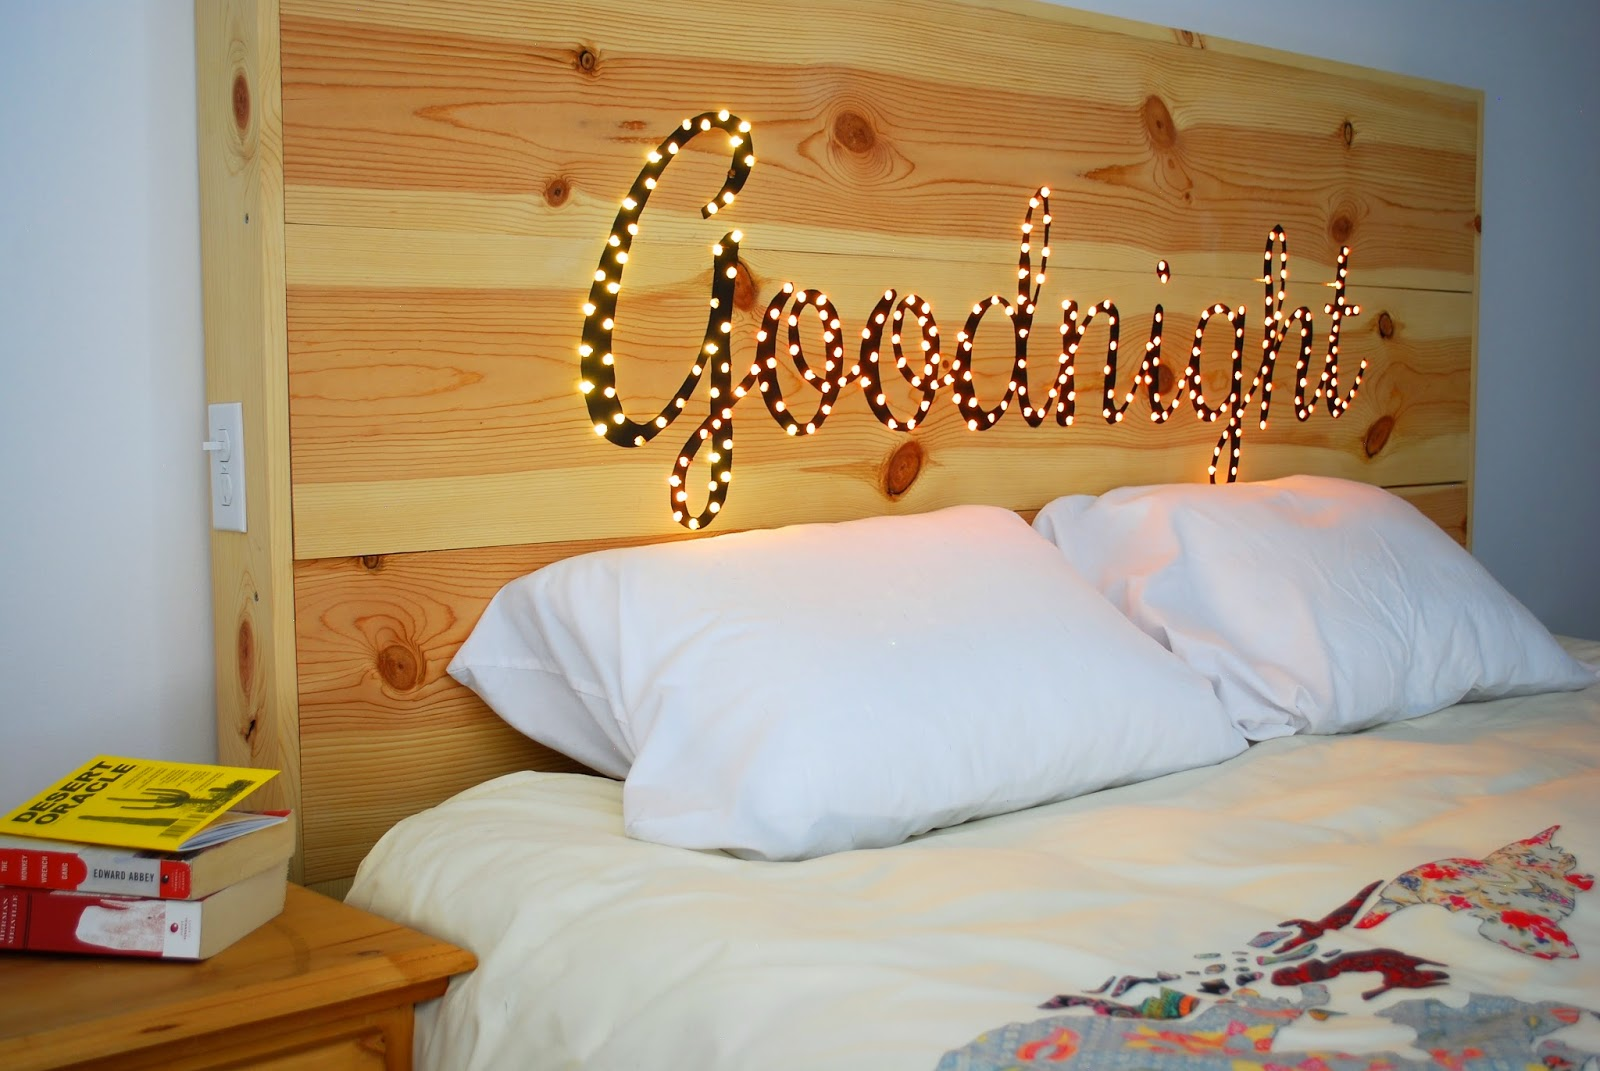 Charming Cheap Headboard Ideas Part - 8: Light Up Headboard